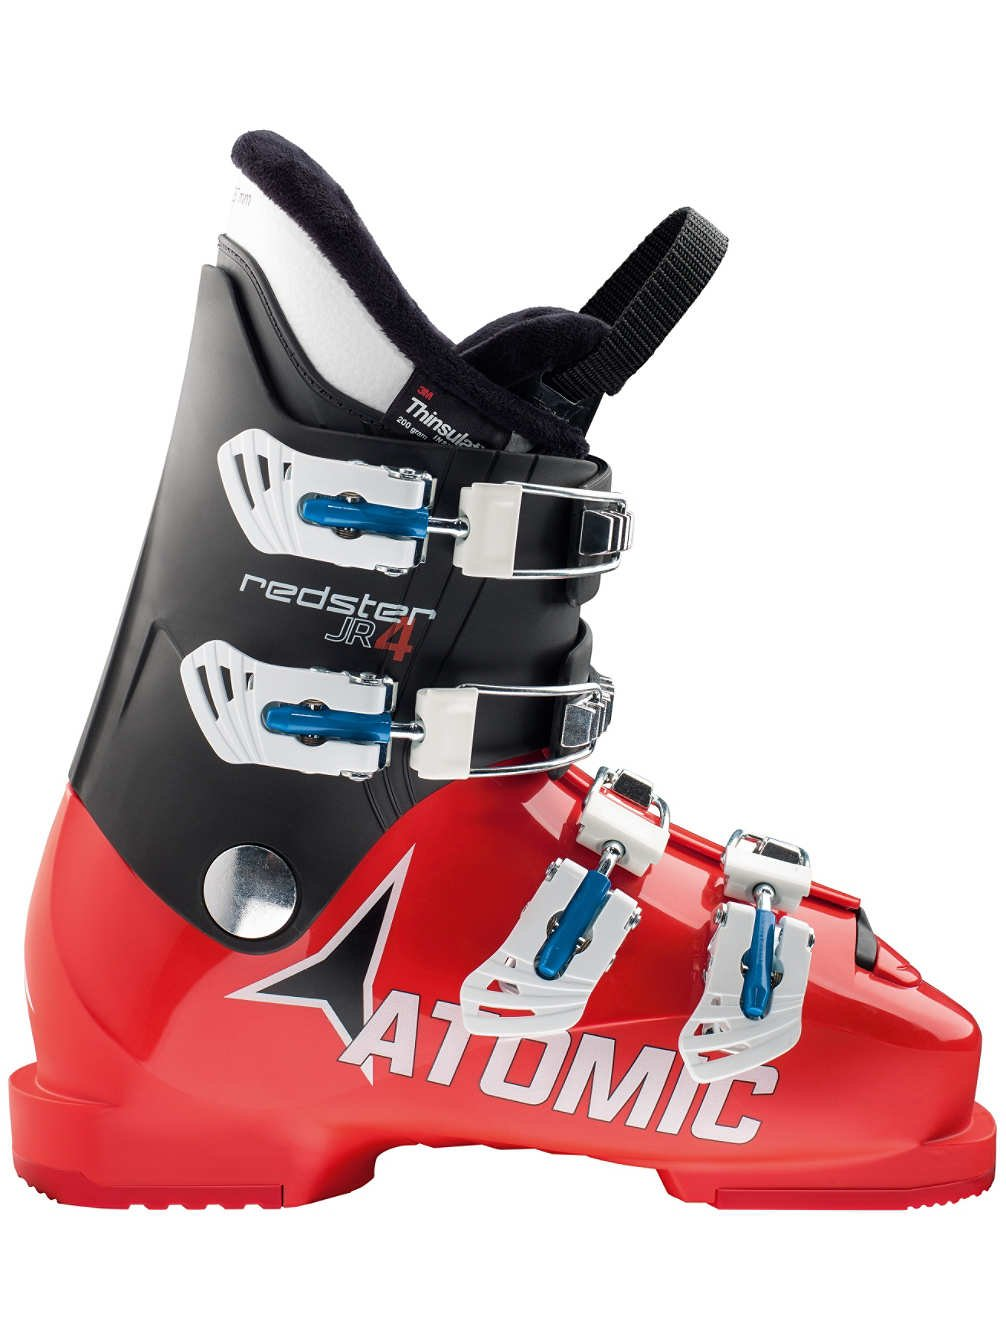 Atomic Redster Jr 4 Downhill Boots Red 25 Black